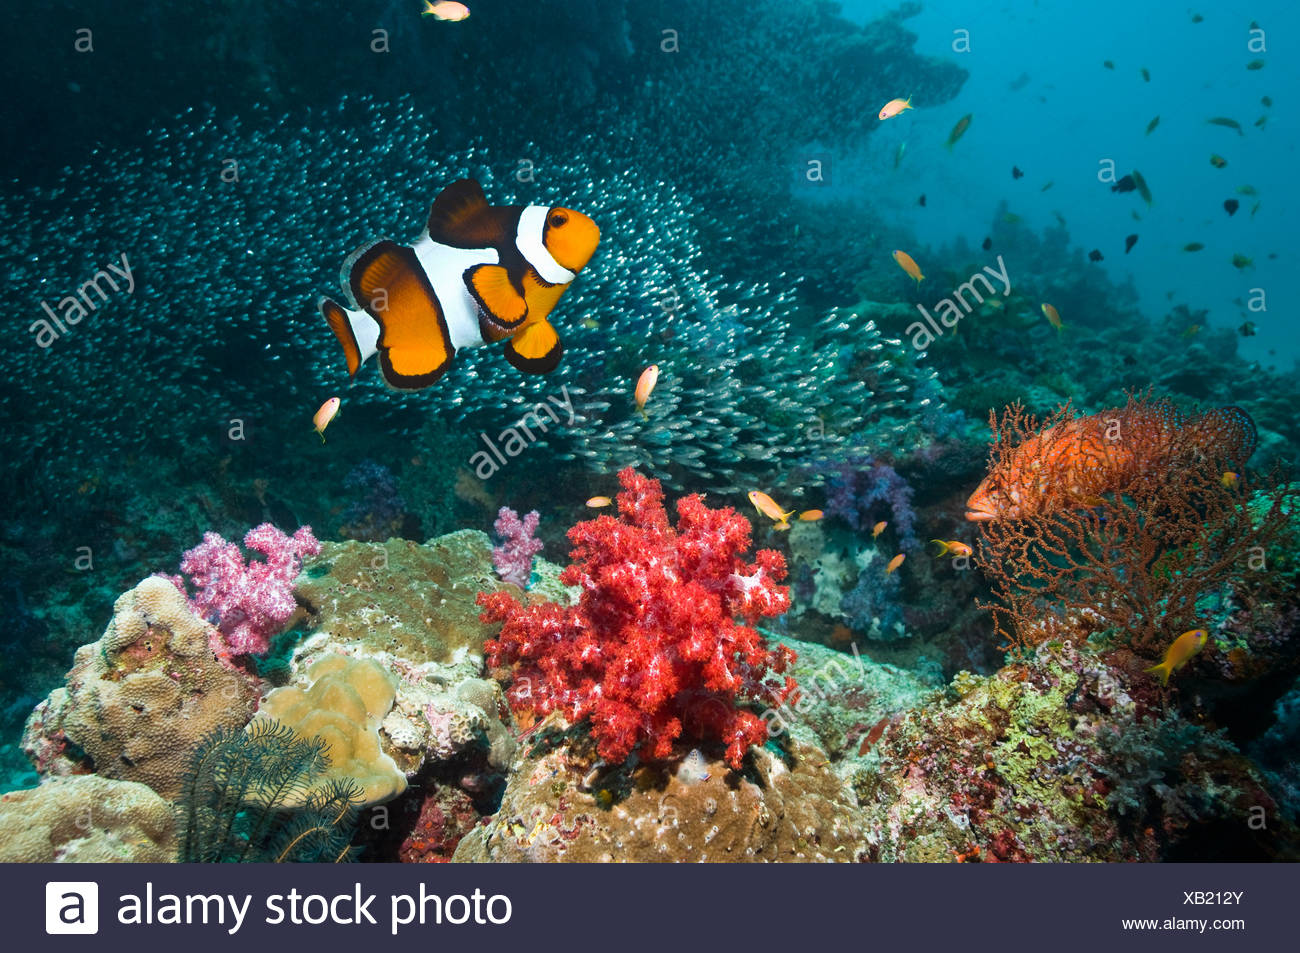 Clown anemonefish and Coral hind over coral reef with soft corals.  Andaman Sea, Thailand. Stock Photo